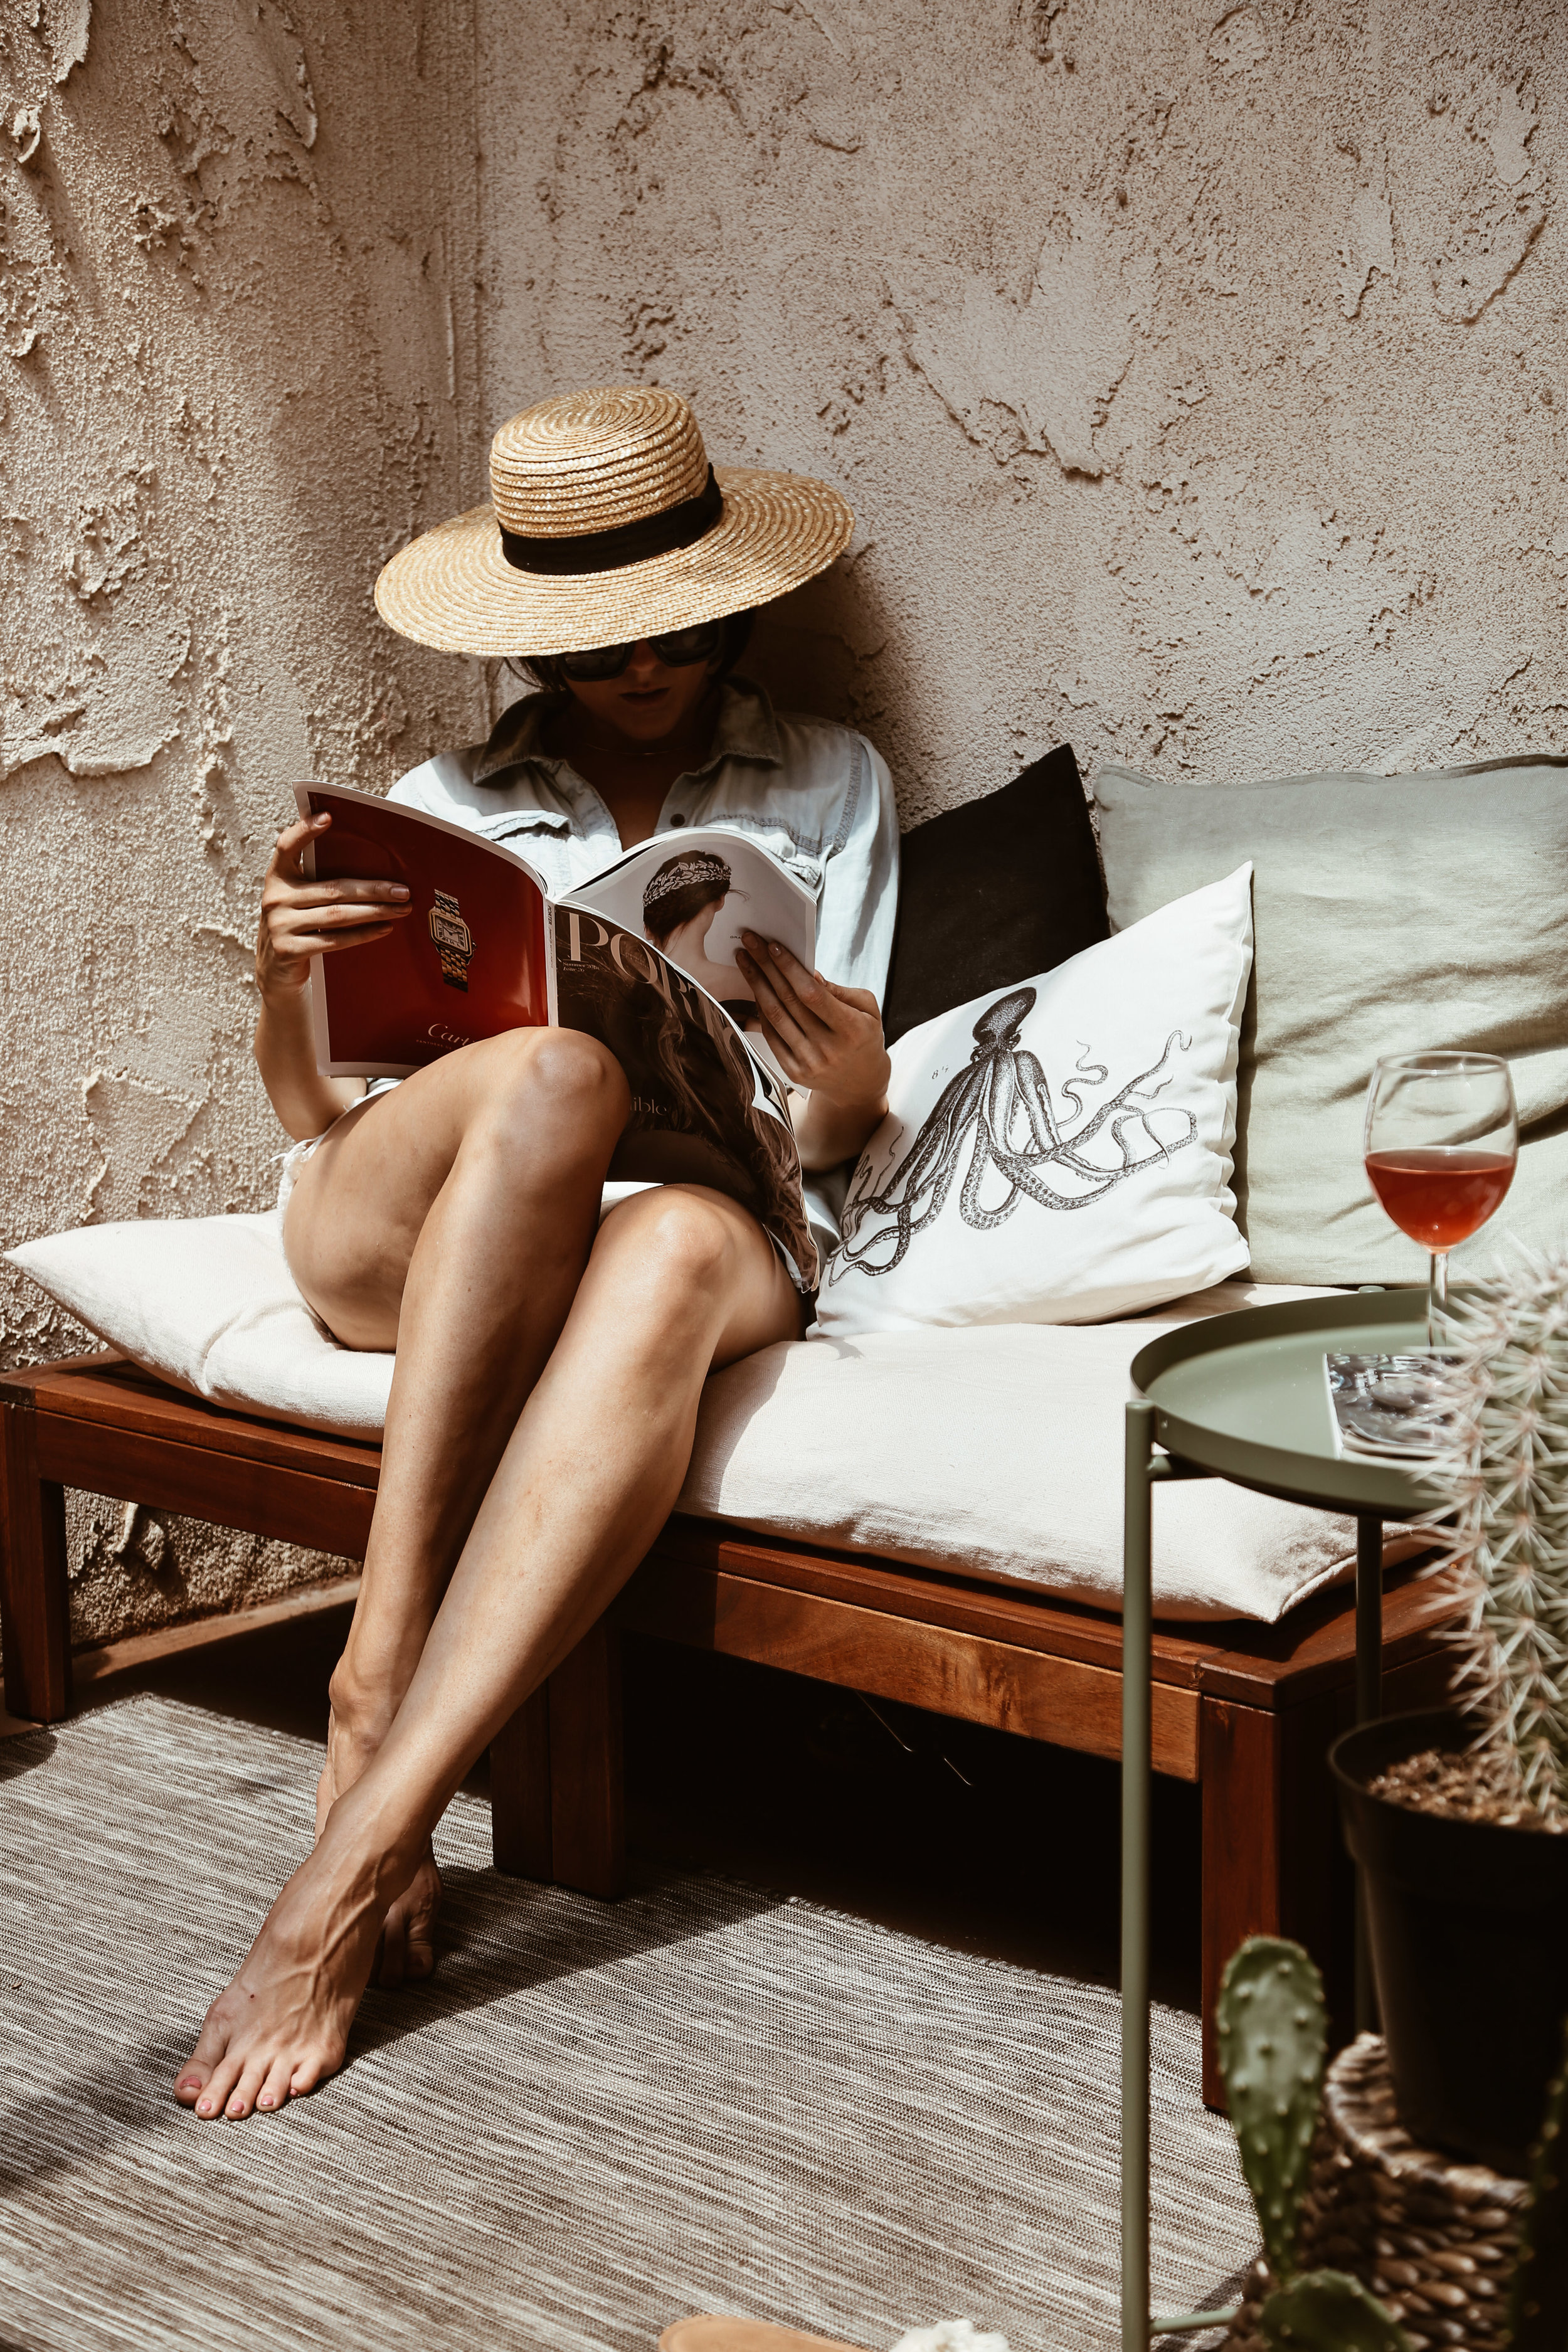 summer style boater hat porter magazine weekend relaxing.jpg